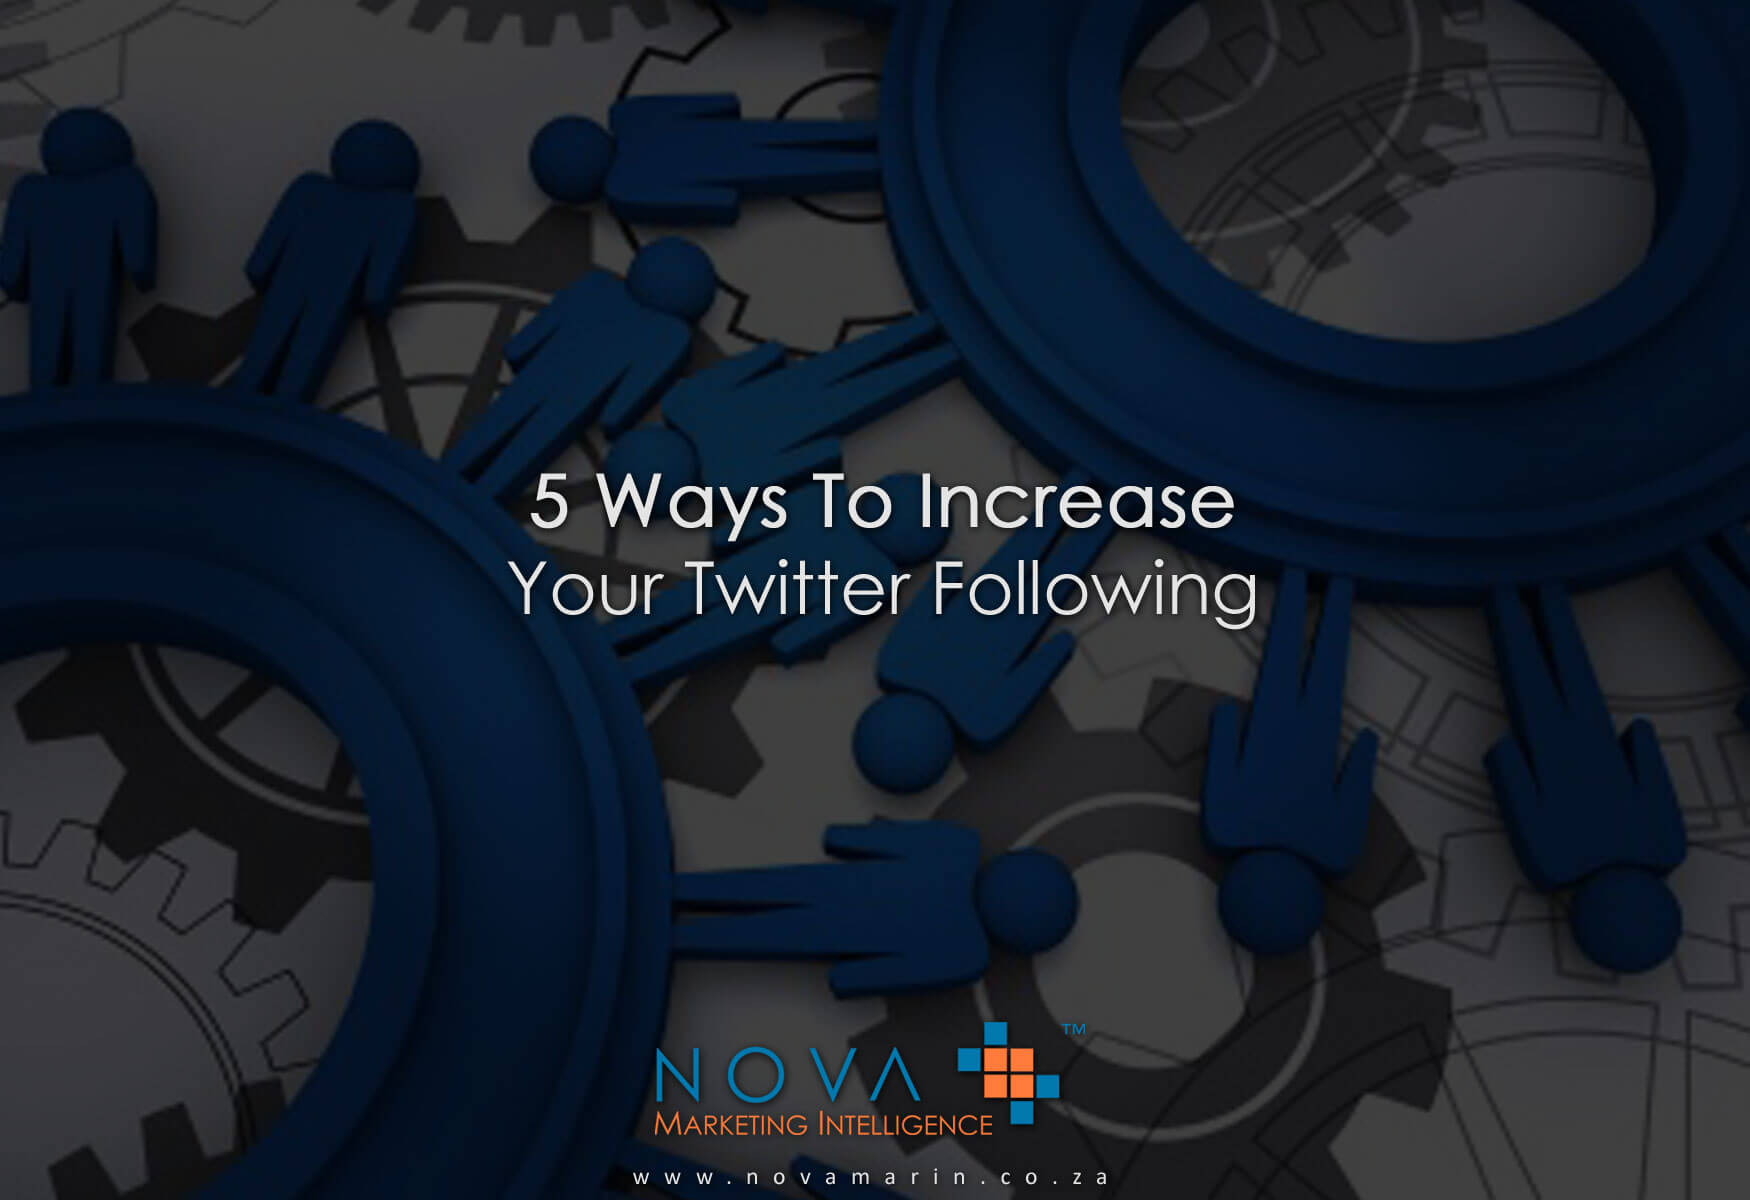 5 Ways To Increase Your Twitter Following